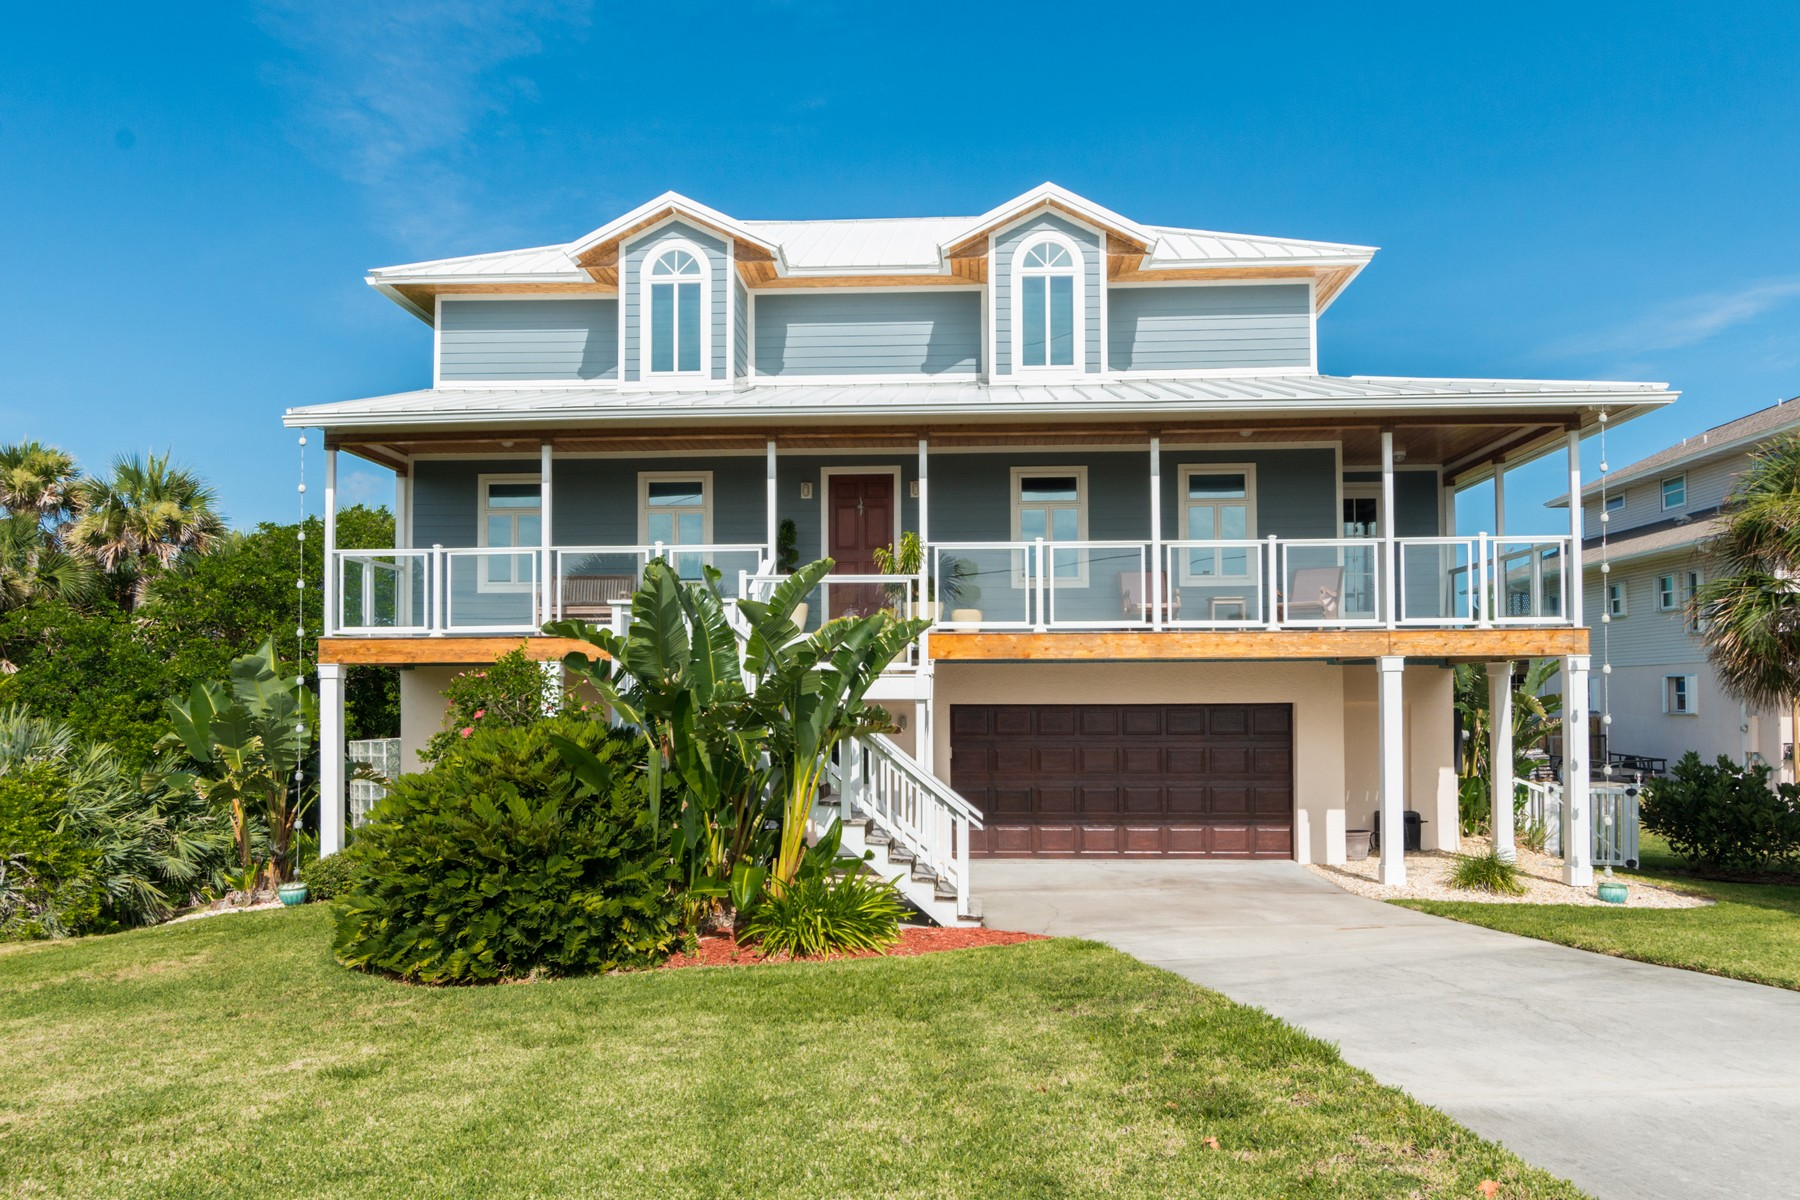 Vivienda unifamiliar por un Venta en Exquisite 3 Story Riverfront Home 8360 Highway A1A Melbourne Beach, Florida, 32951 Estados Unidos